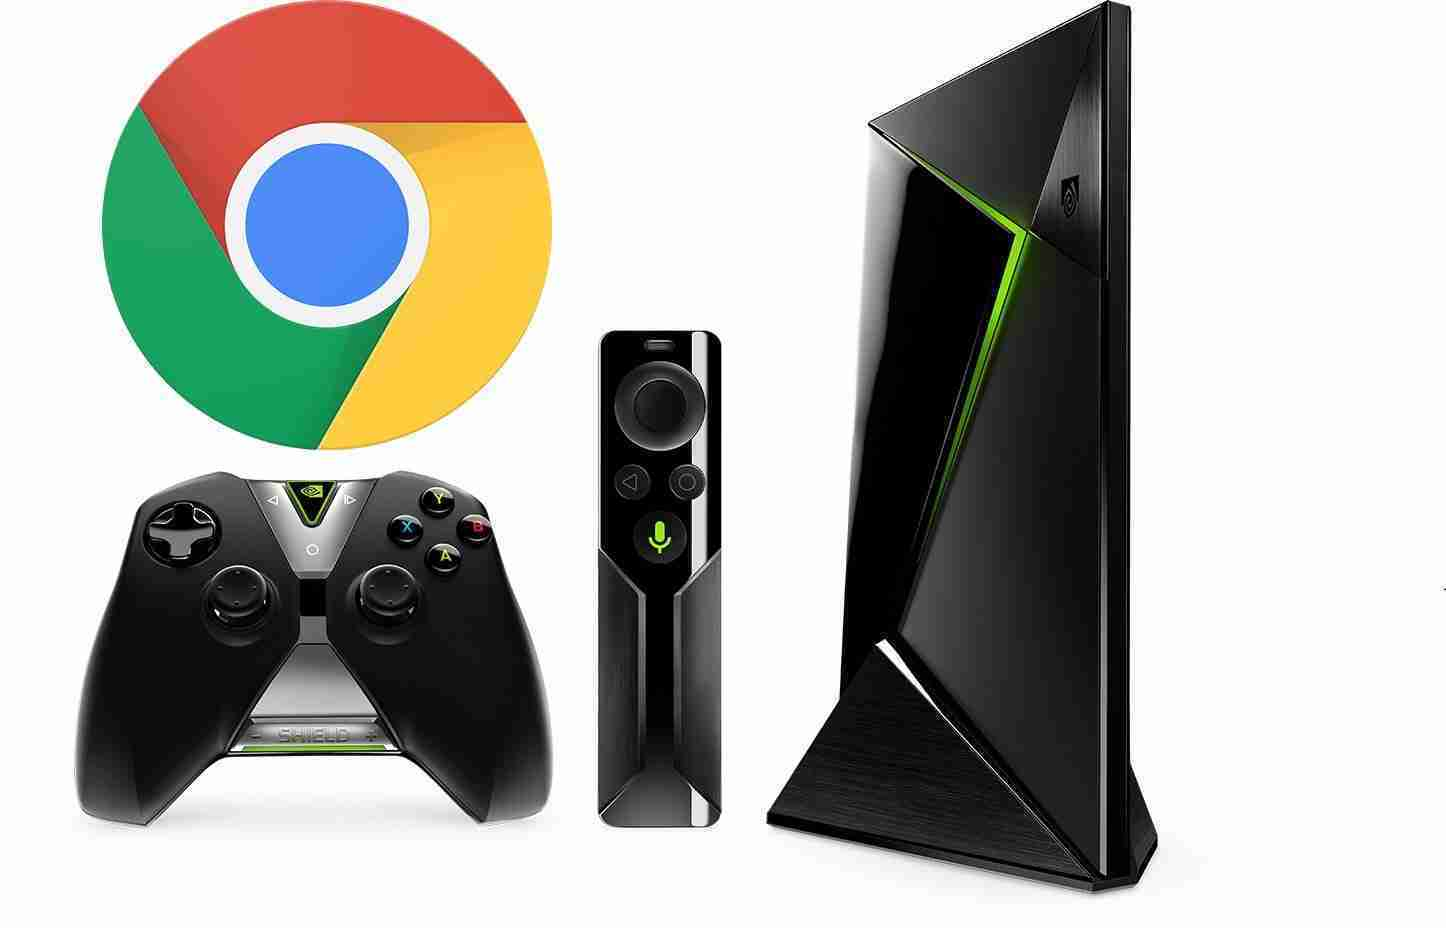 Come installare Chrome su Nvidia Shield